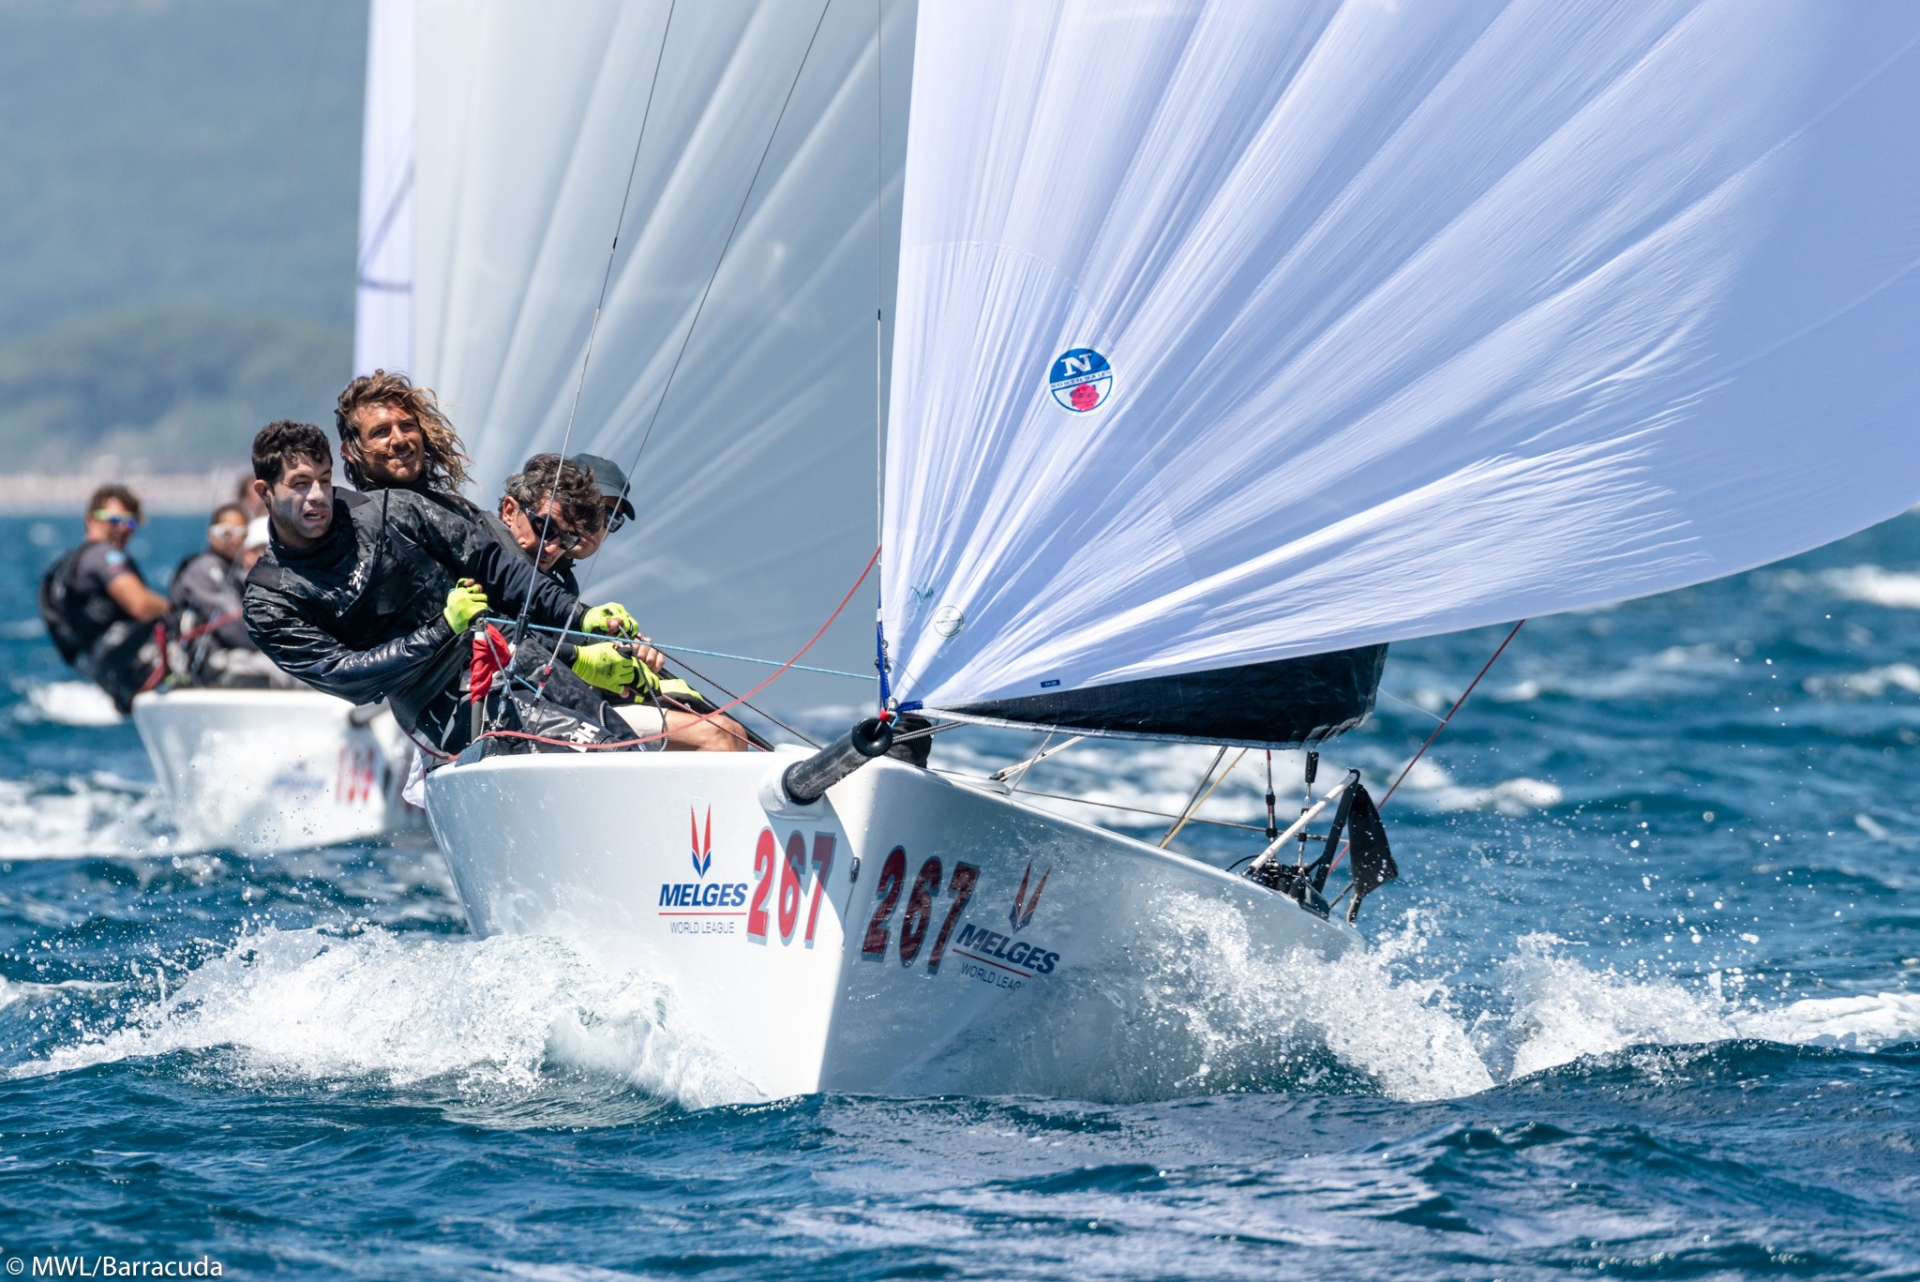 YCCS members at the Melges 20 World League - NEWS - Yacht Club Costa Smeralda